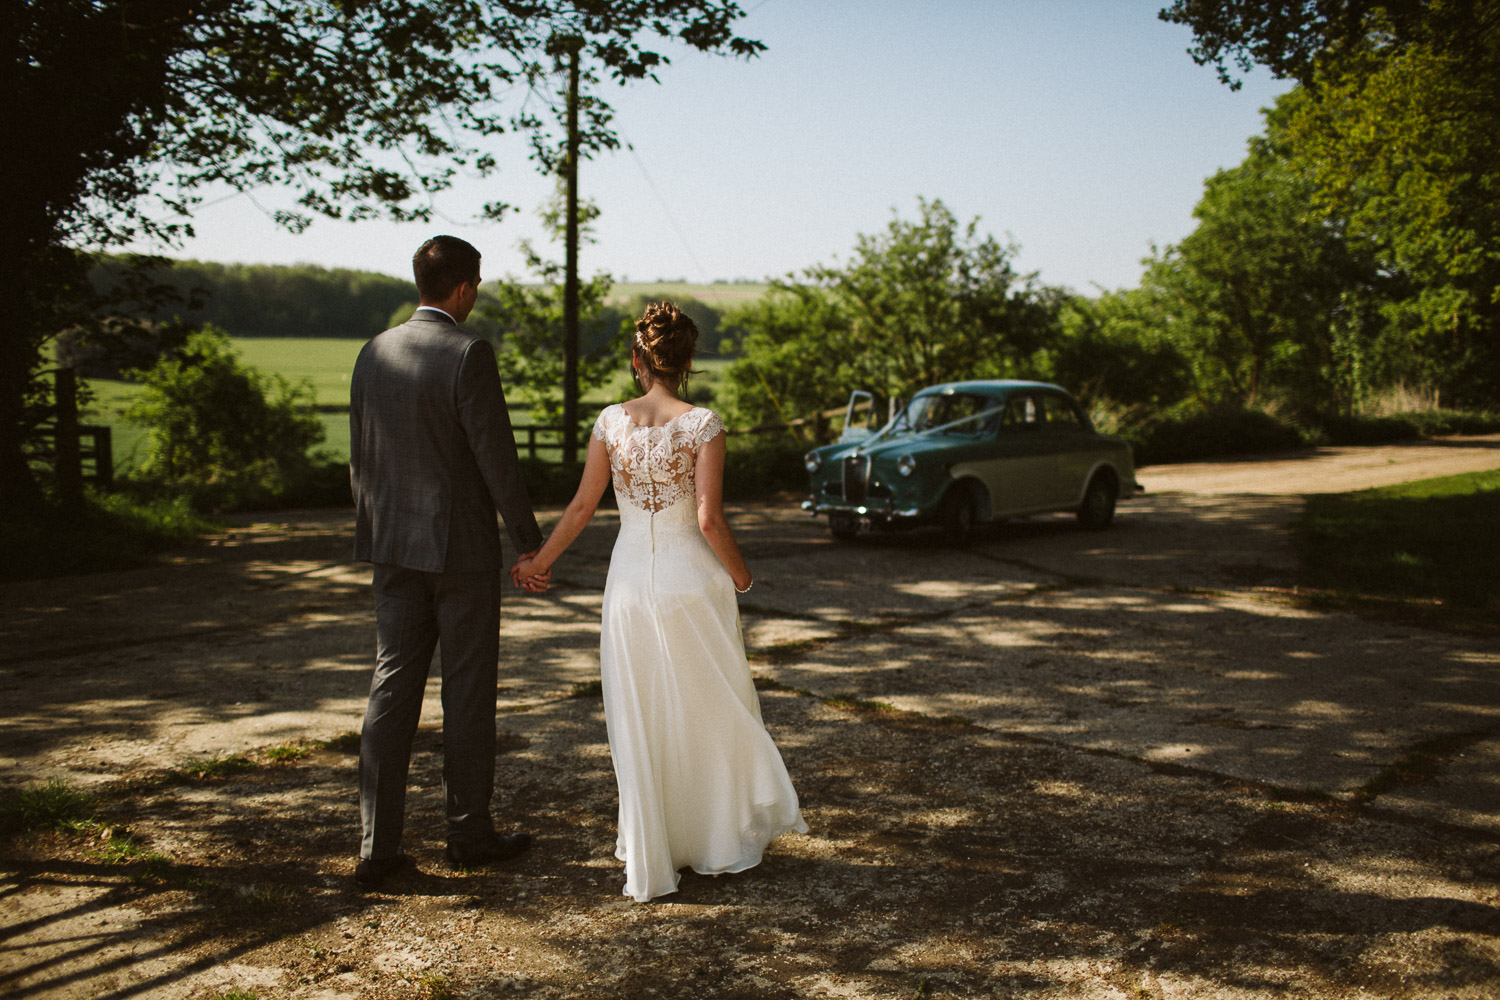 newly weds and vintage car from behind